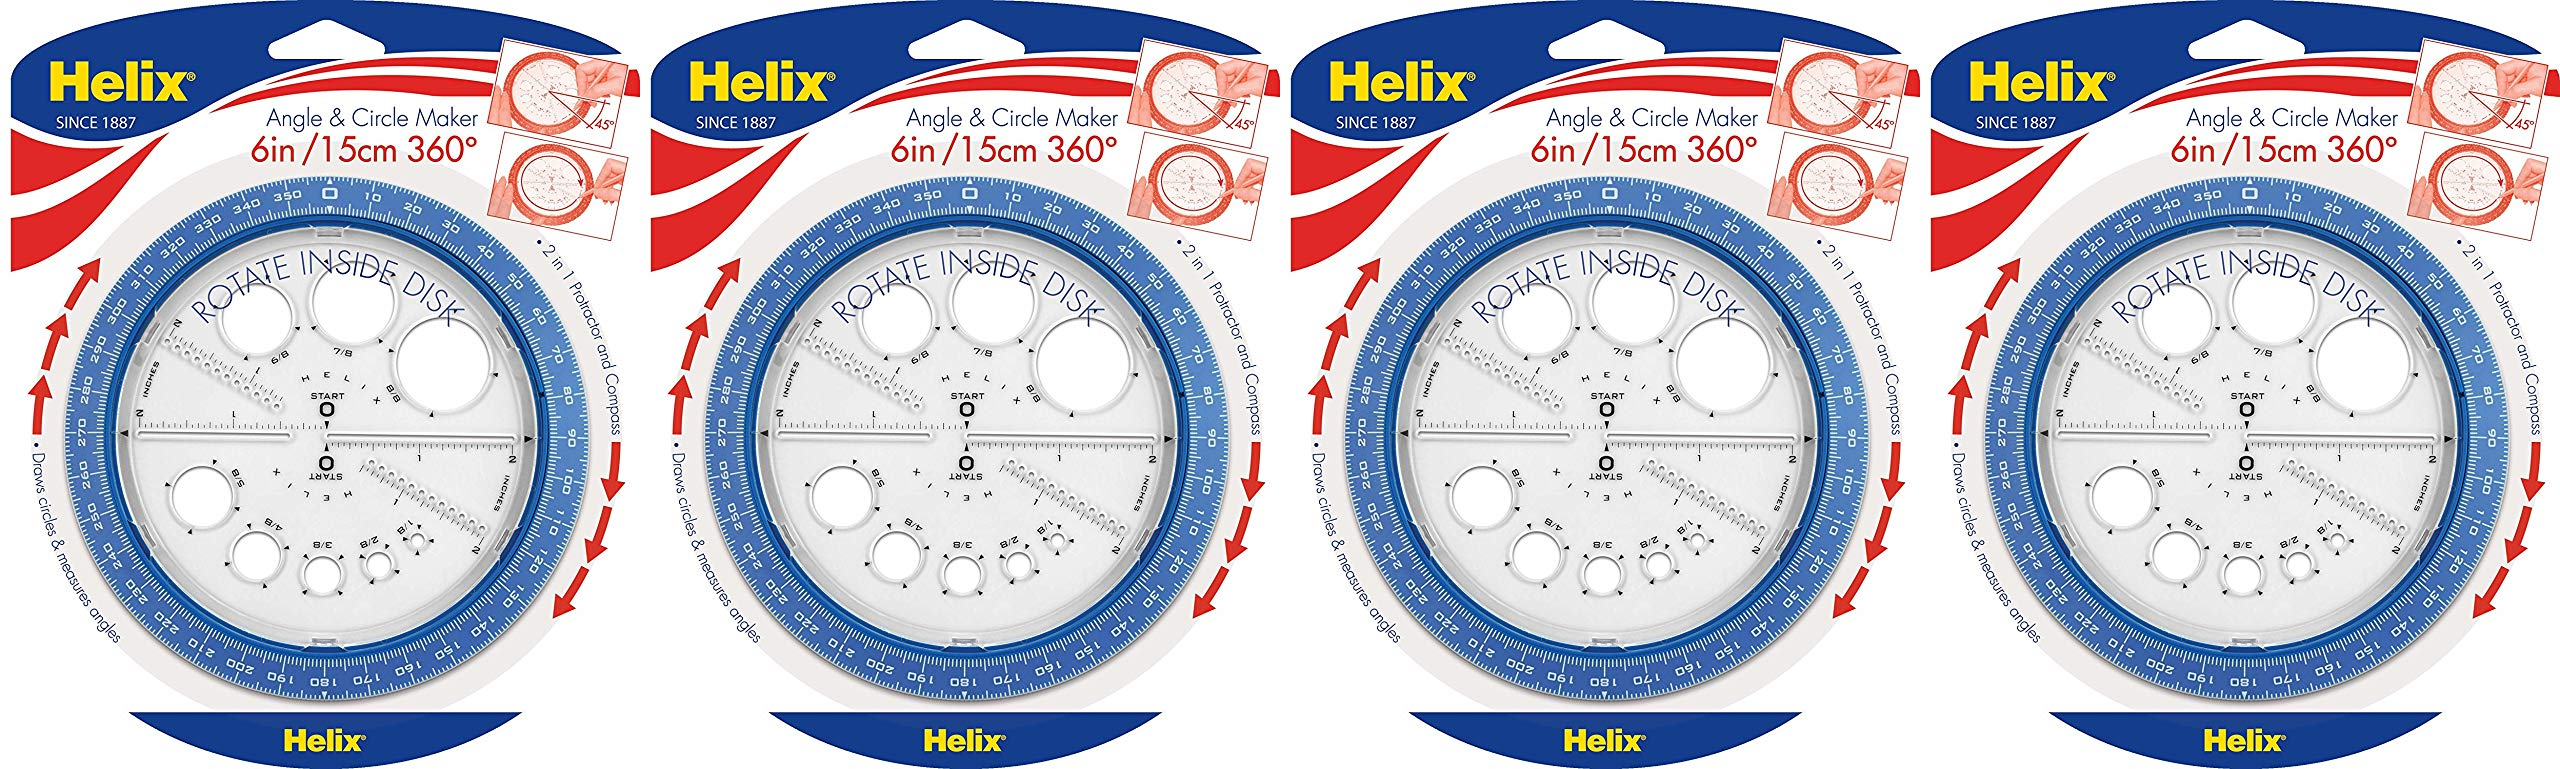 Helix 360° Angle and Circle Maker, Assorted Colors, 4 Pack